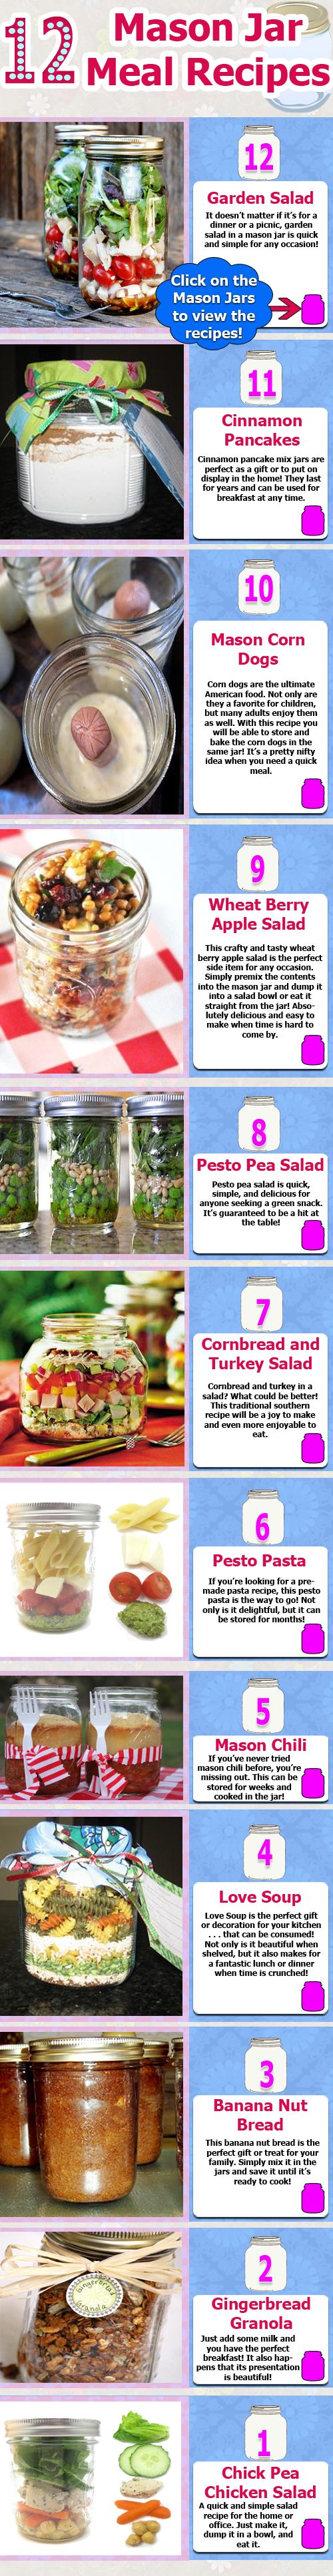 Great ideas!~Holiday Gift, Fun Recipe, Gift Ideas, Meals Recipe, Mason Jars Meals, Mason Jars Food, 12 Mason, Mason Jars Recipe, Camps Food